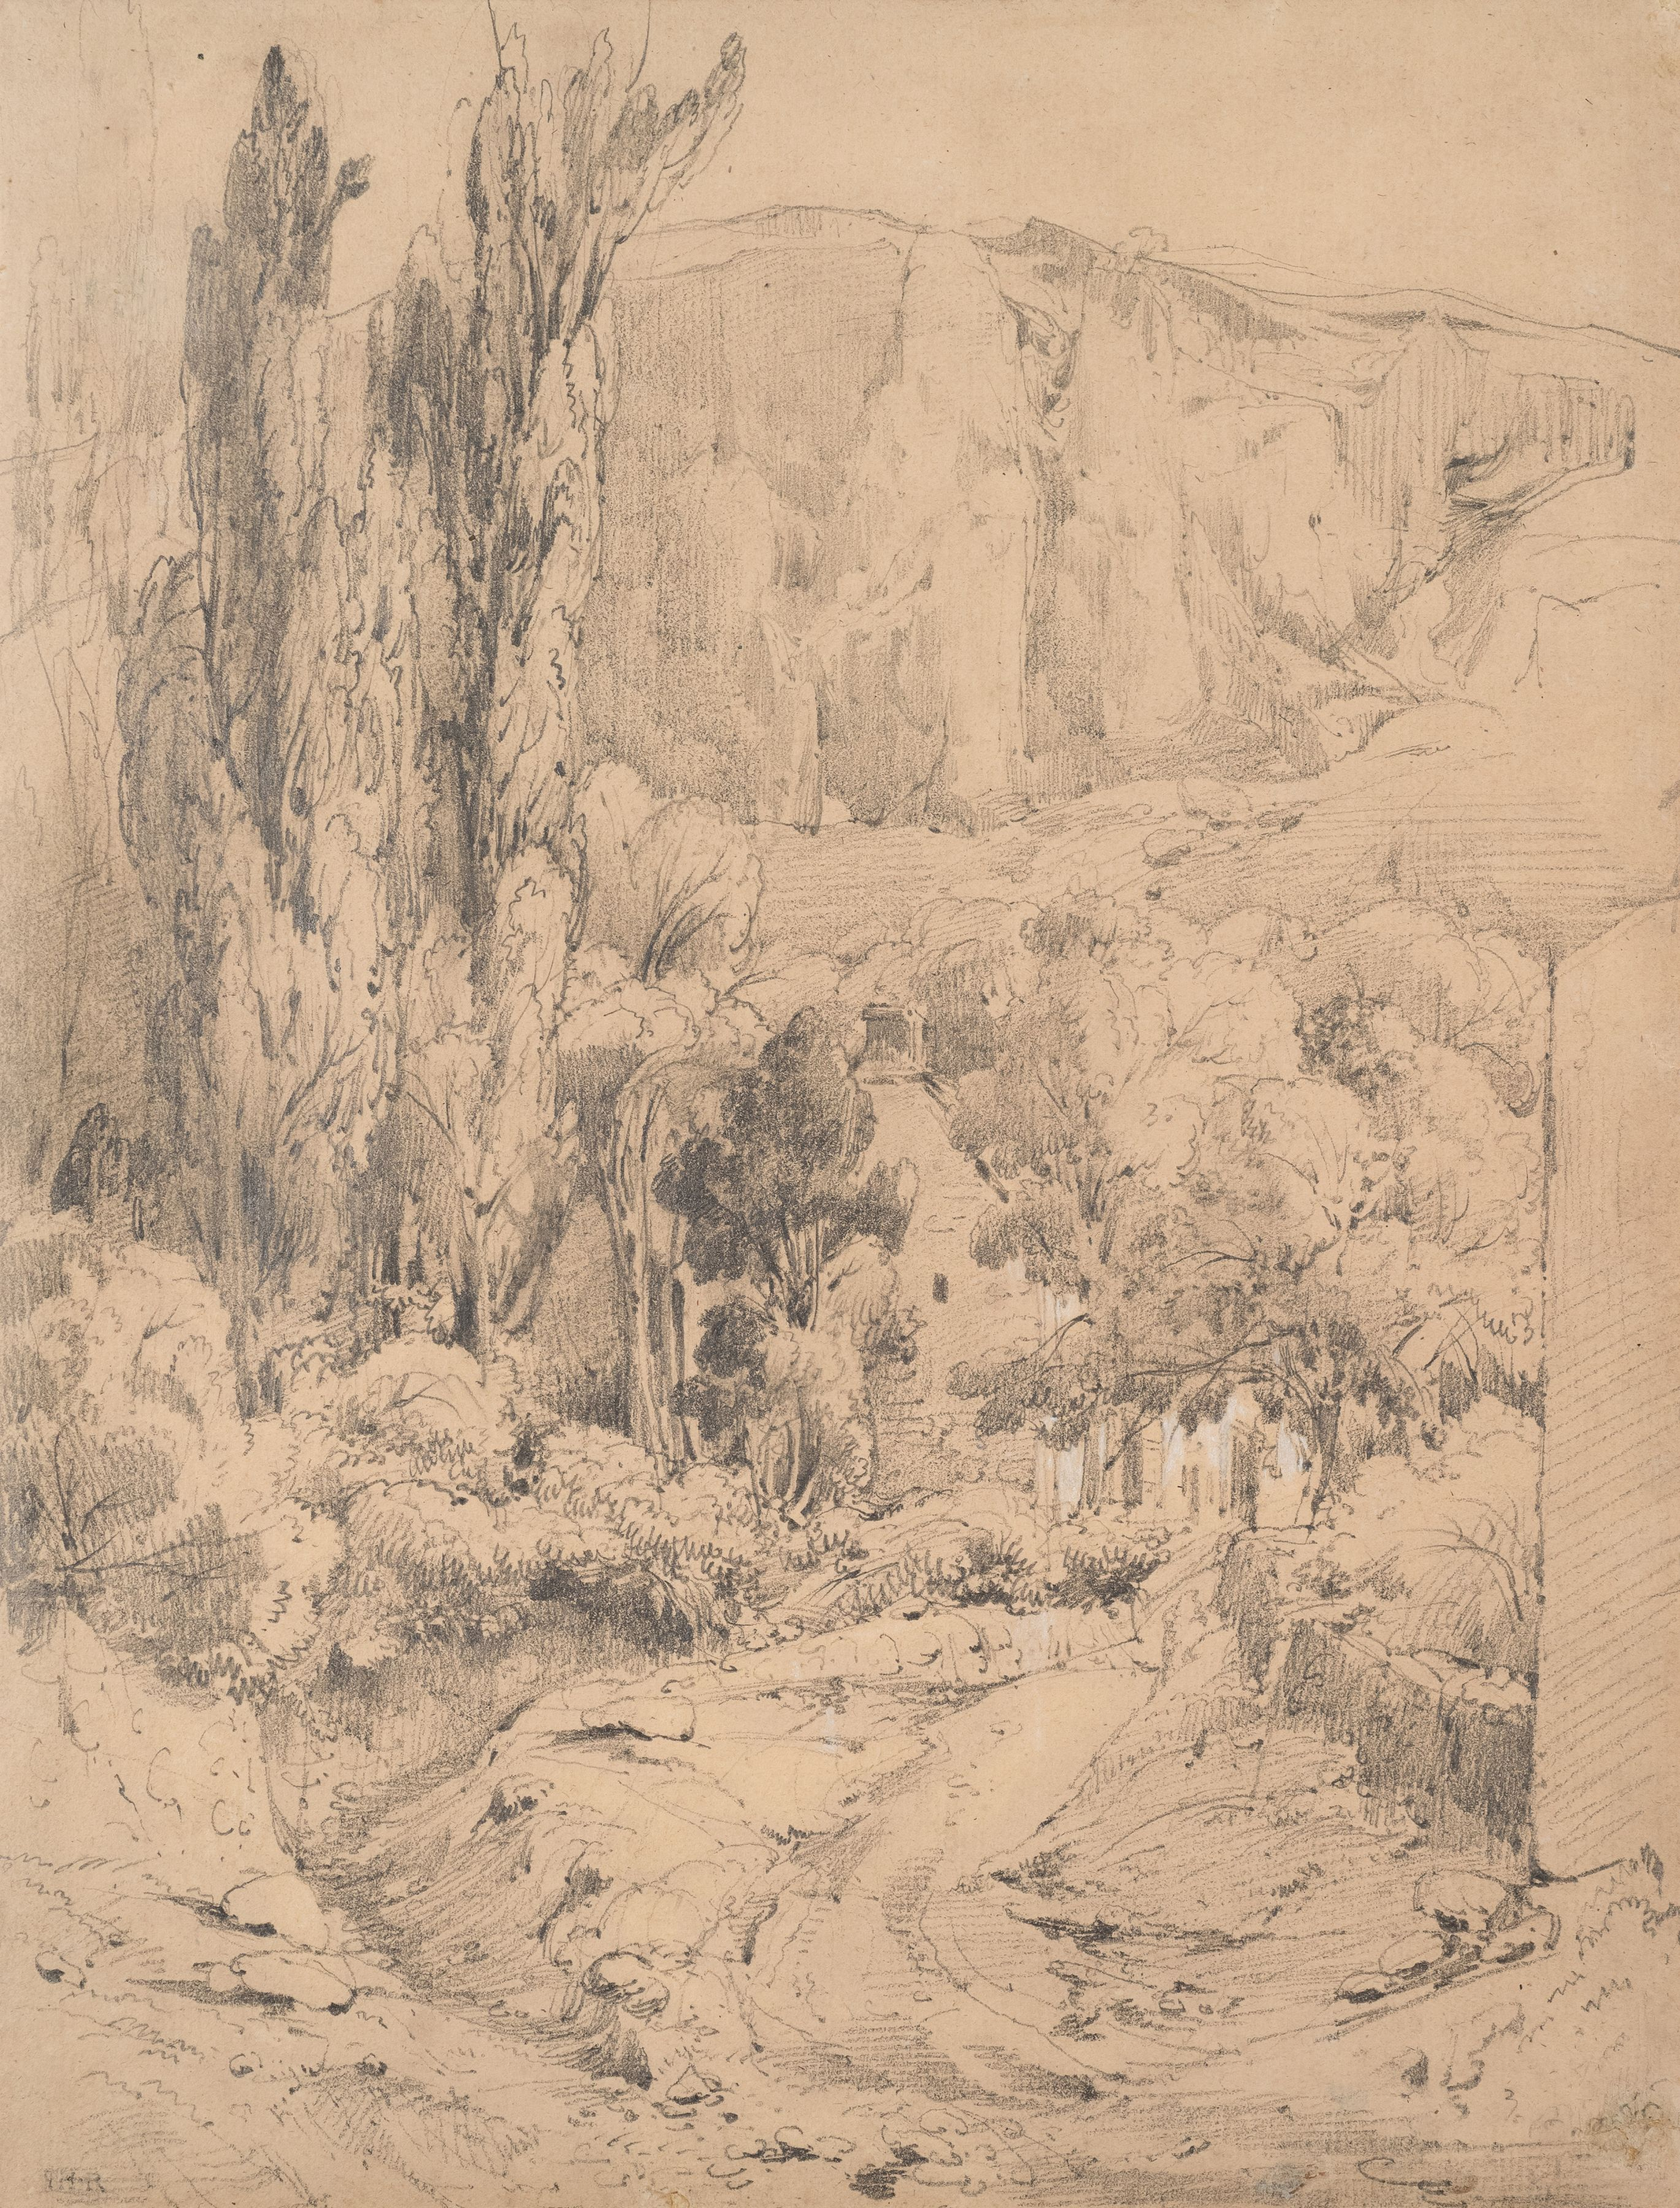 Theodore Rousseau Landscape, c. 1834  Graphite on paper ​11 1/2 x 8 3/4 inches